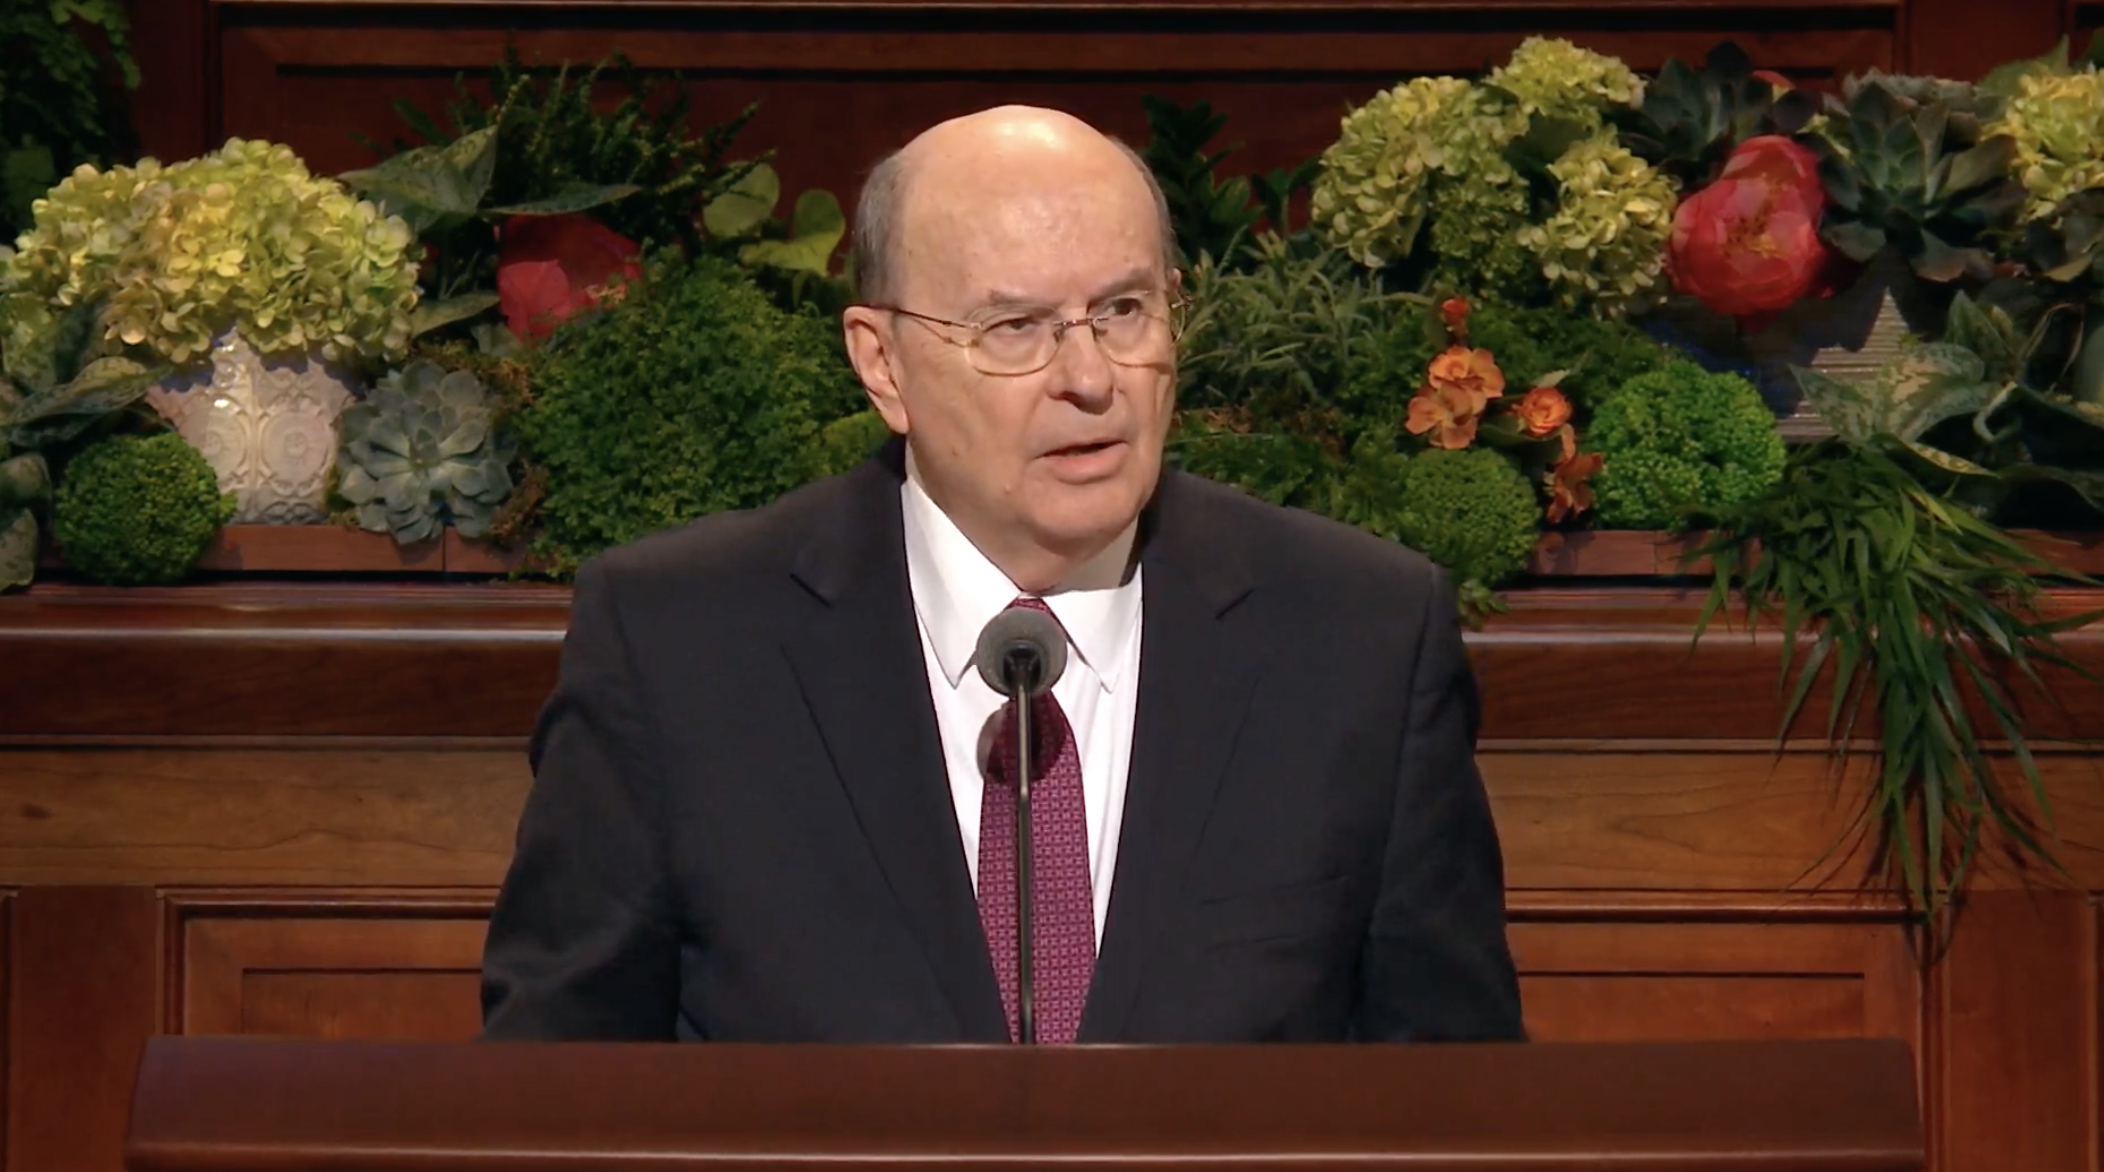 Elder Quentin L. Cook of the Quorum of the Twelve Apostles gives his address during the Sunday morning session of the 189th Annual General Conference on April 7, 2019.